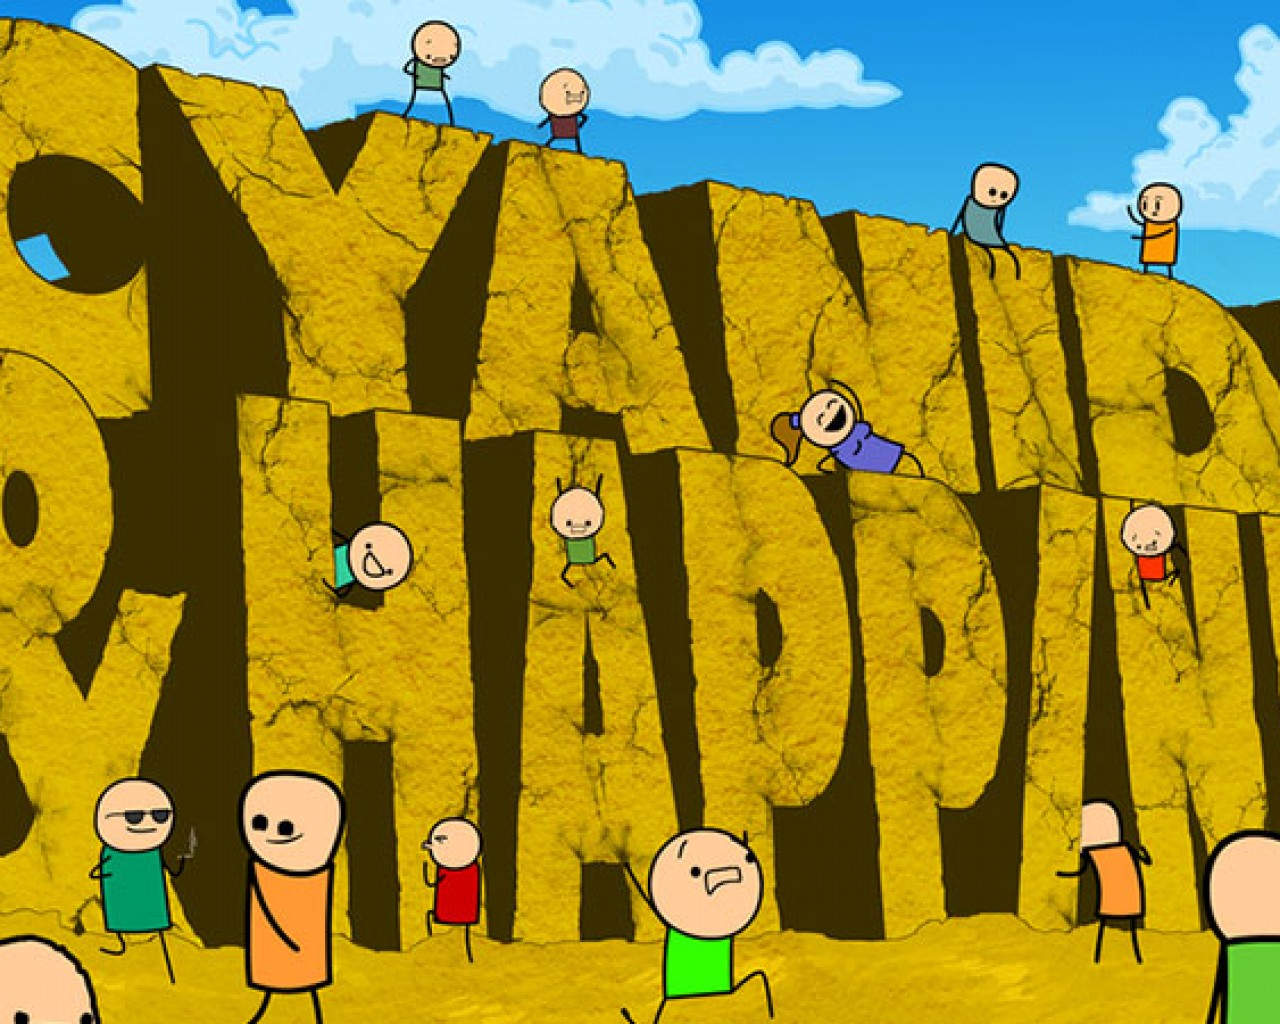 Poster Image for Cyanide and Happiness